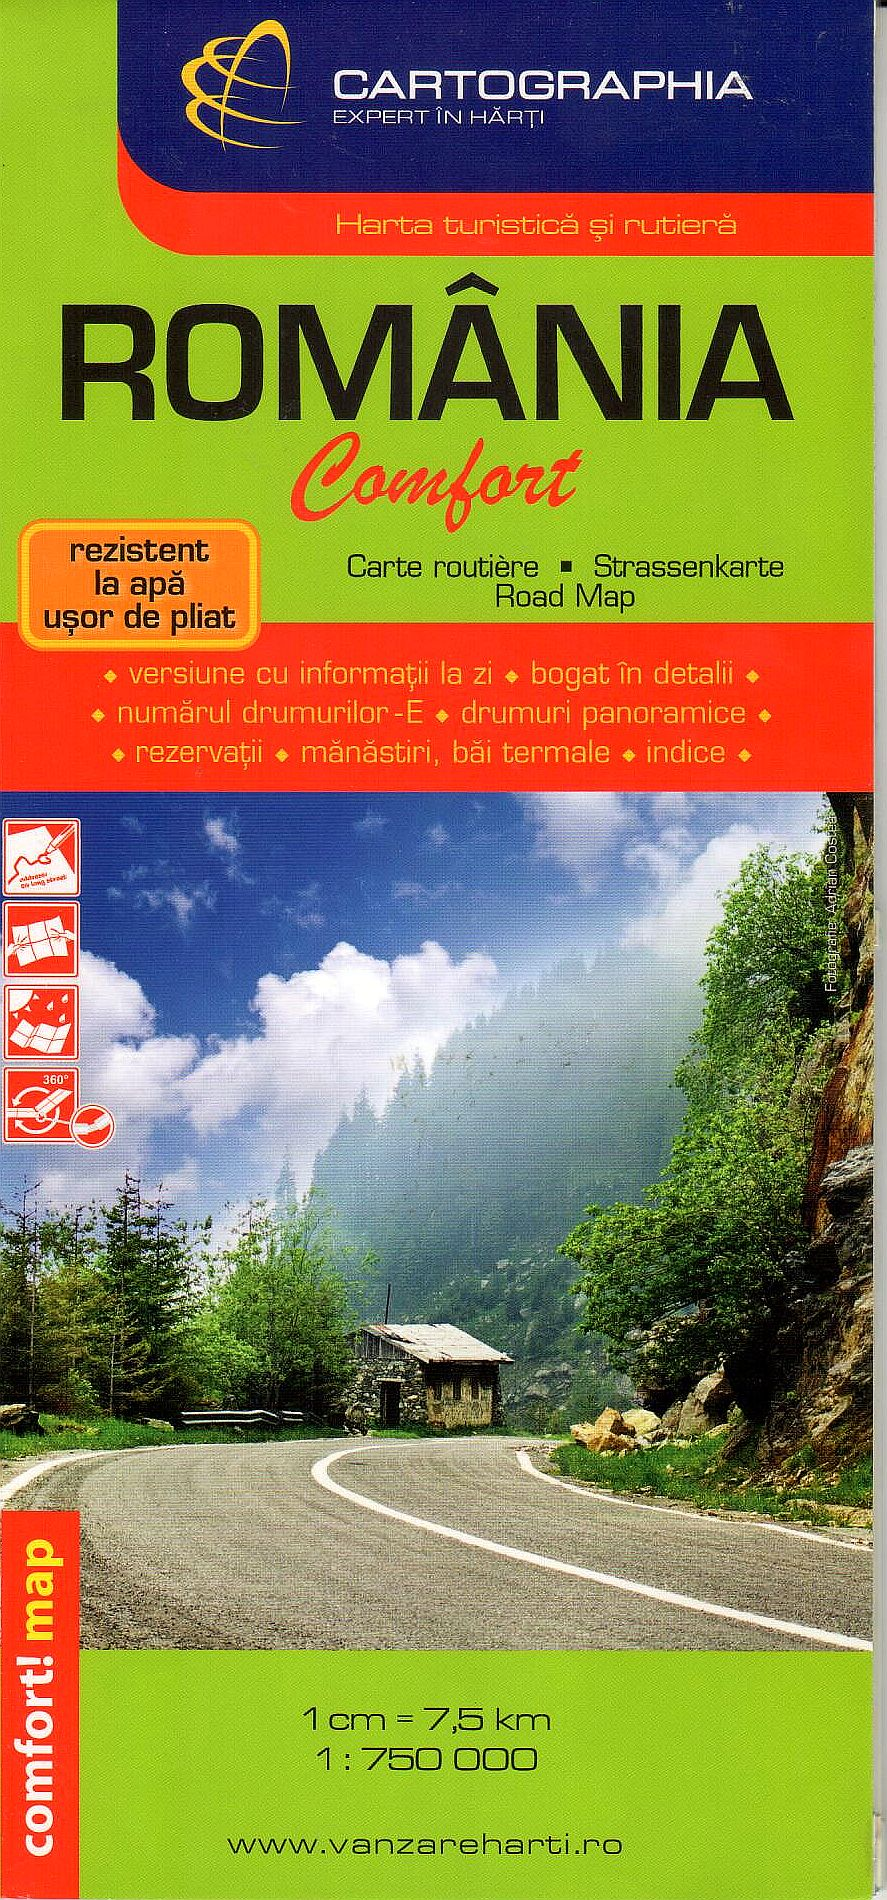 Easy to fold, laminated road map of Romania comfort with index and sights